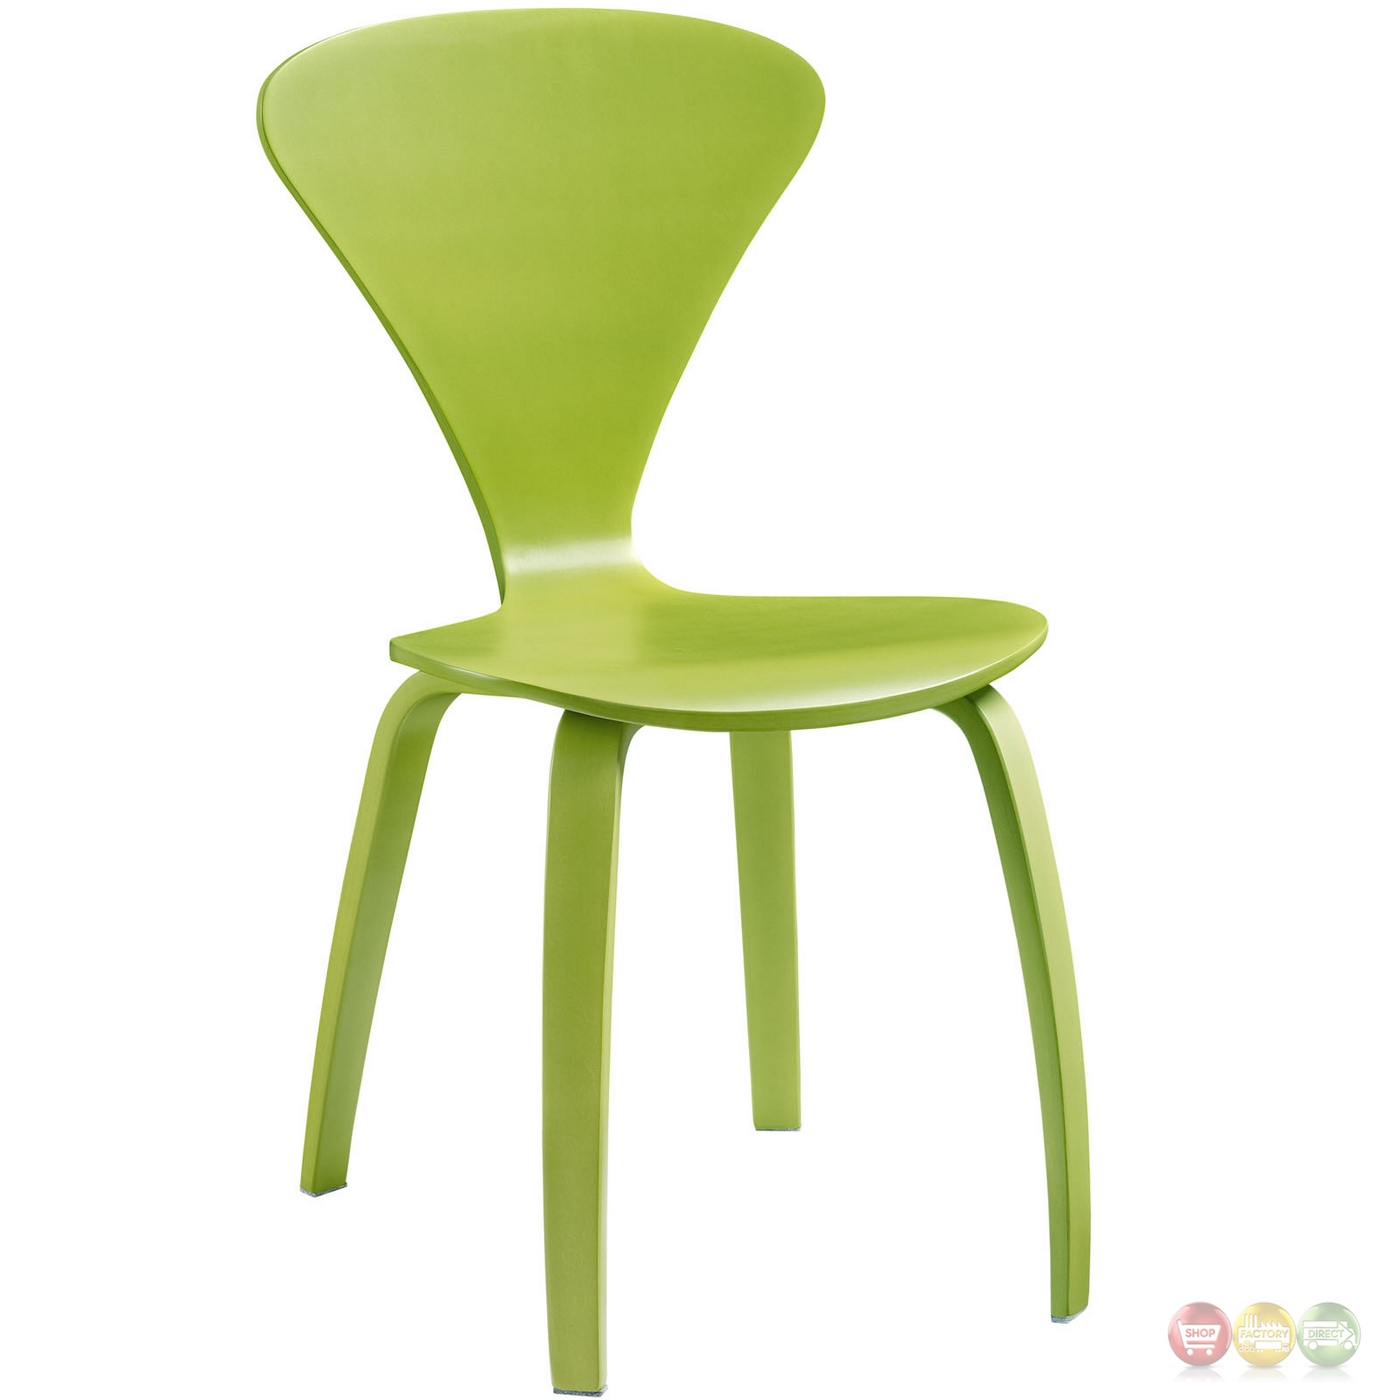 modern green dining chairs alfa revolving chair price vortex stackable wood with v shaped